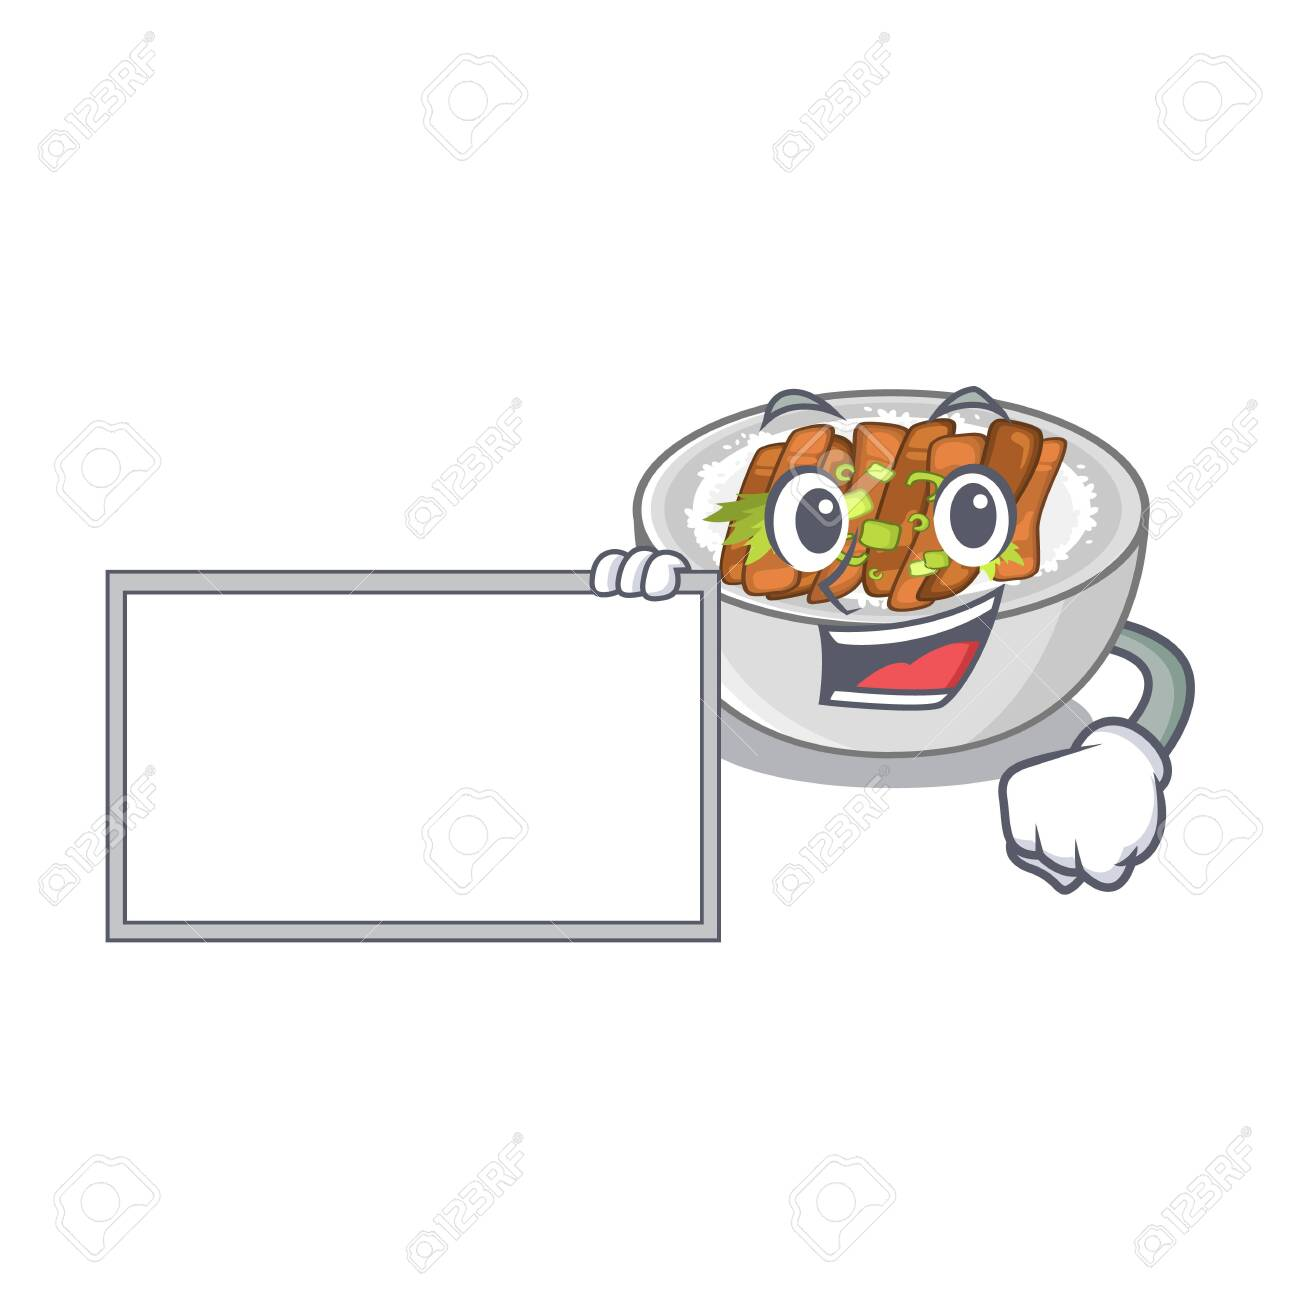 With board donburi isolated with in the mascot vector illustration - 128368329